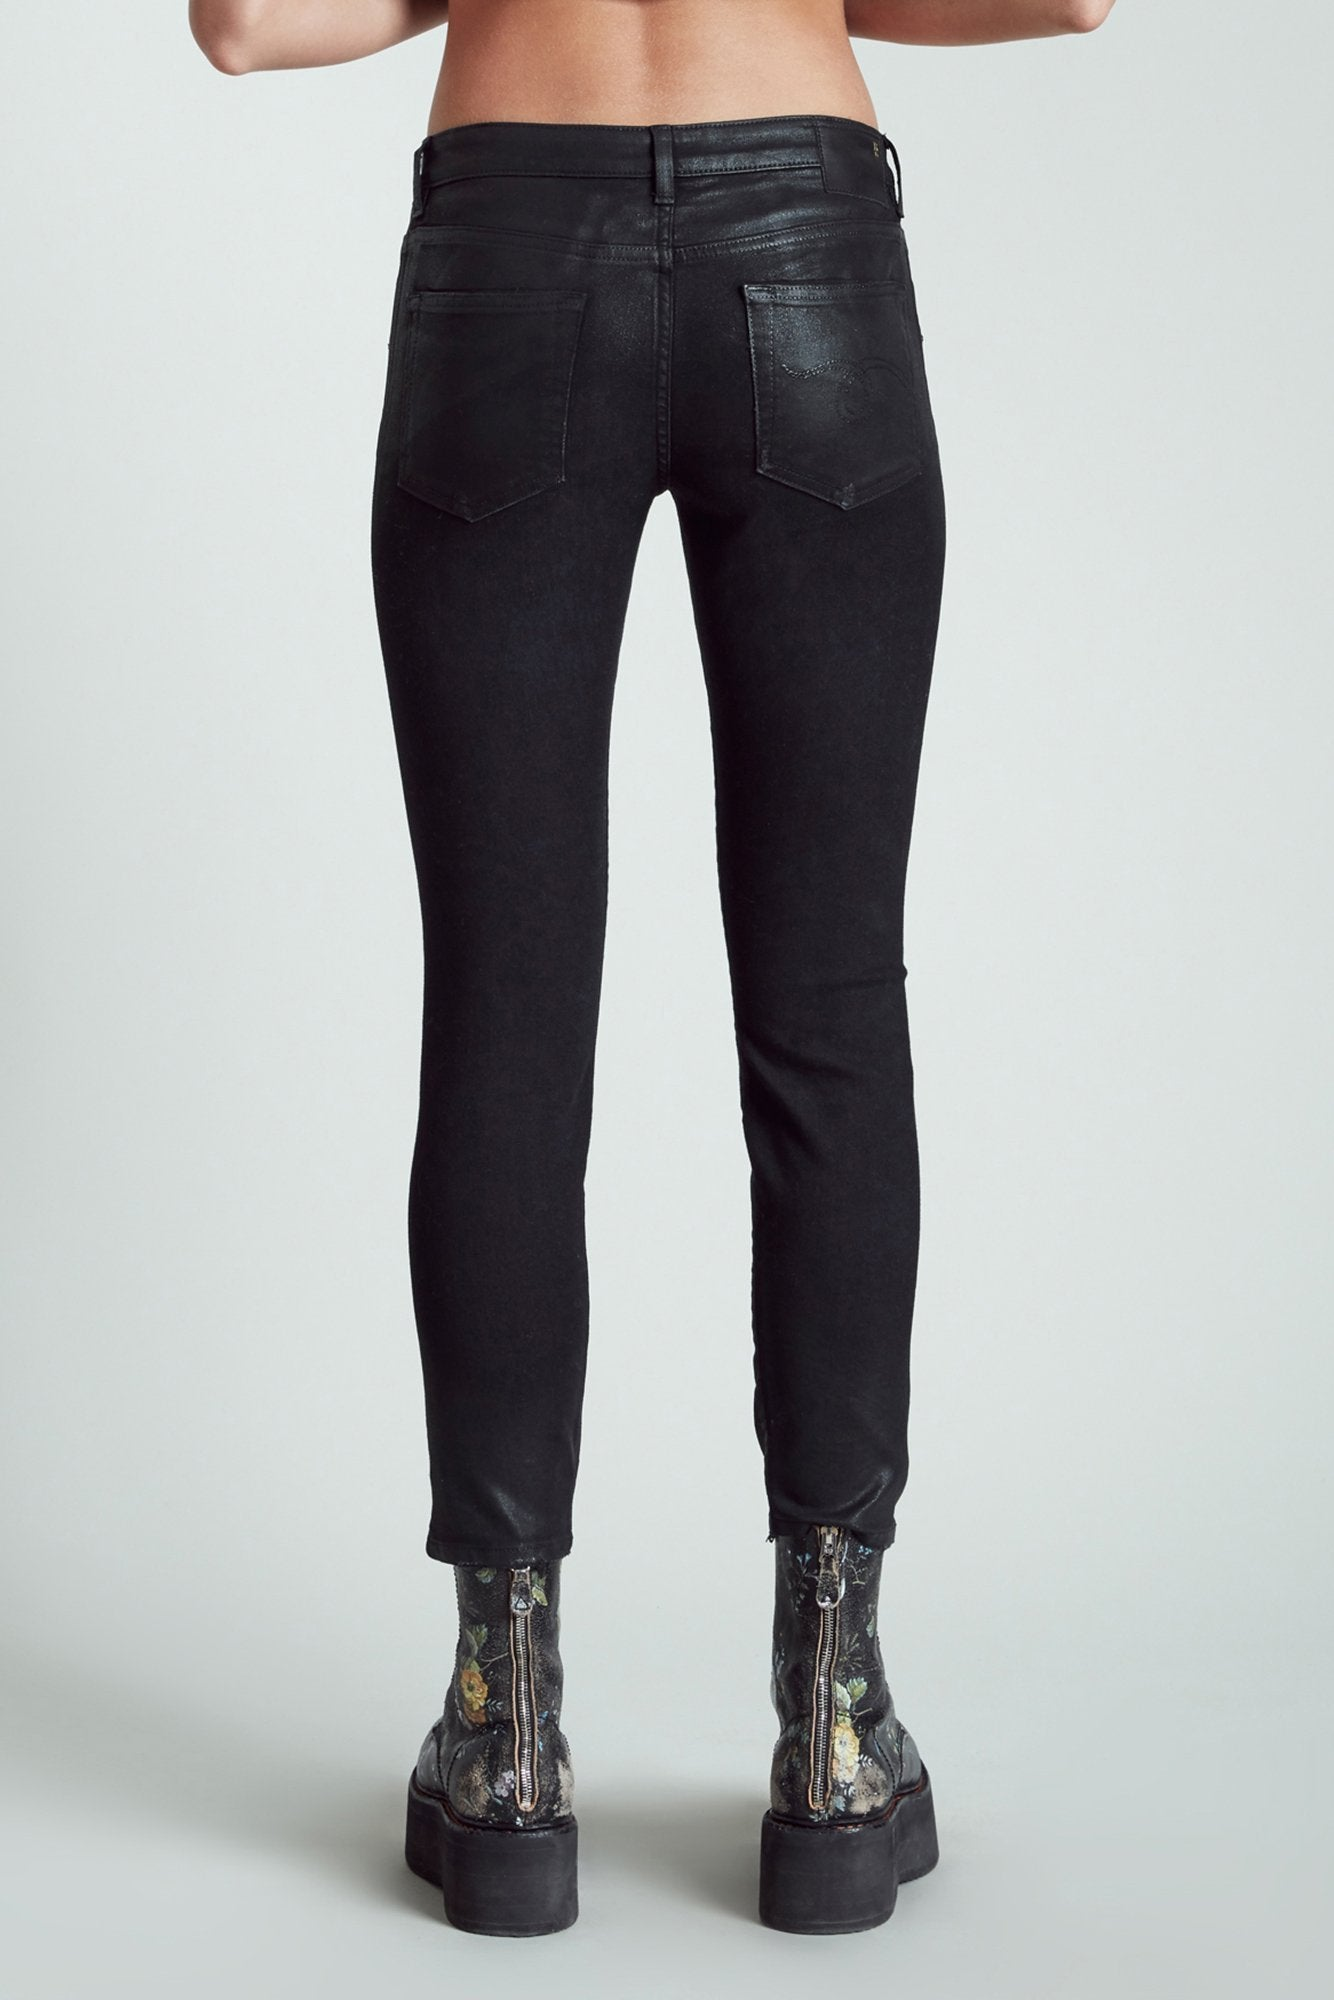 Boy Skinny - Coated Black